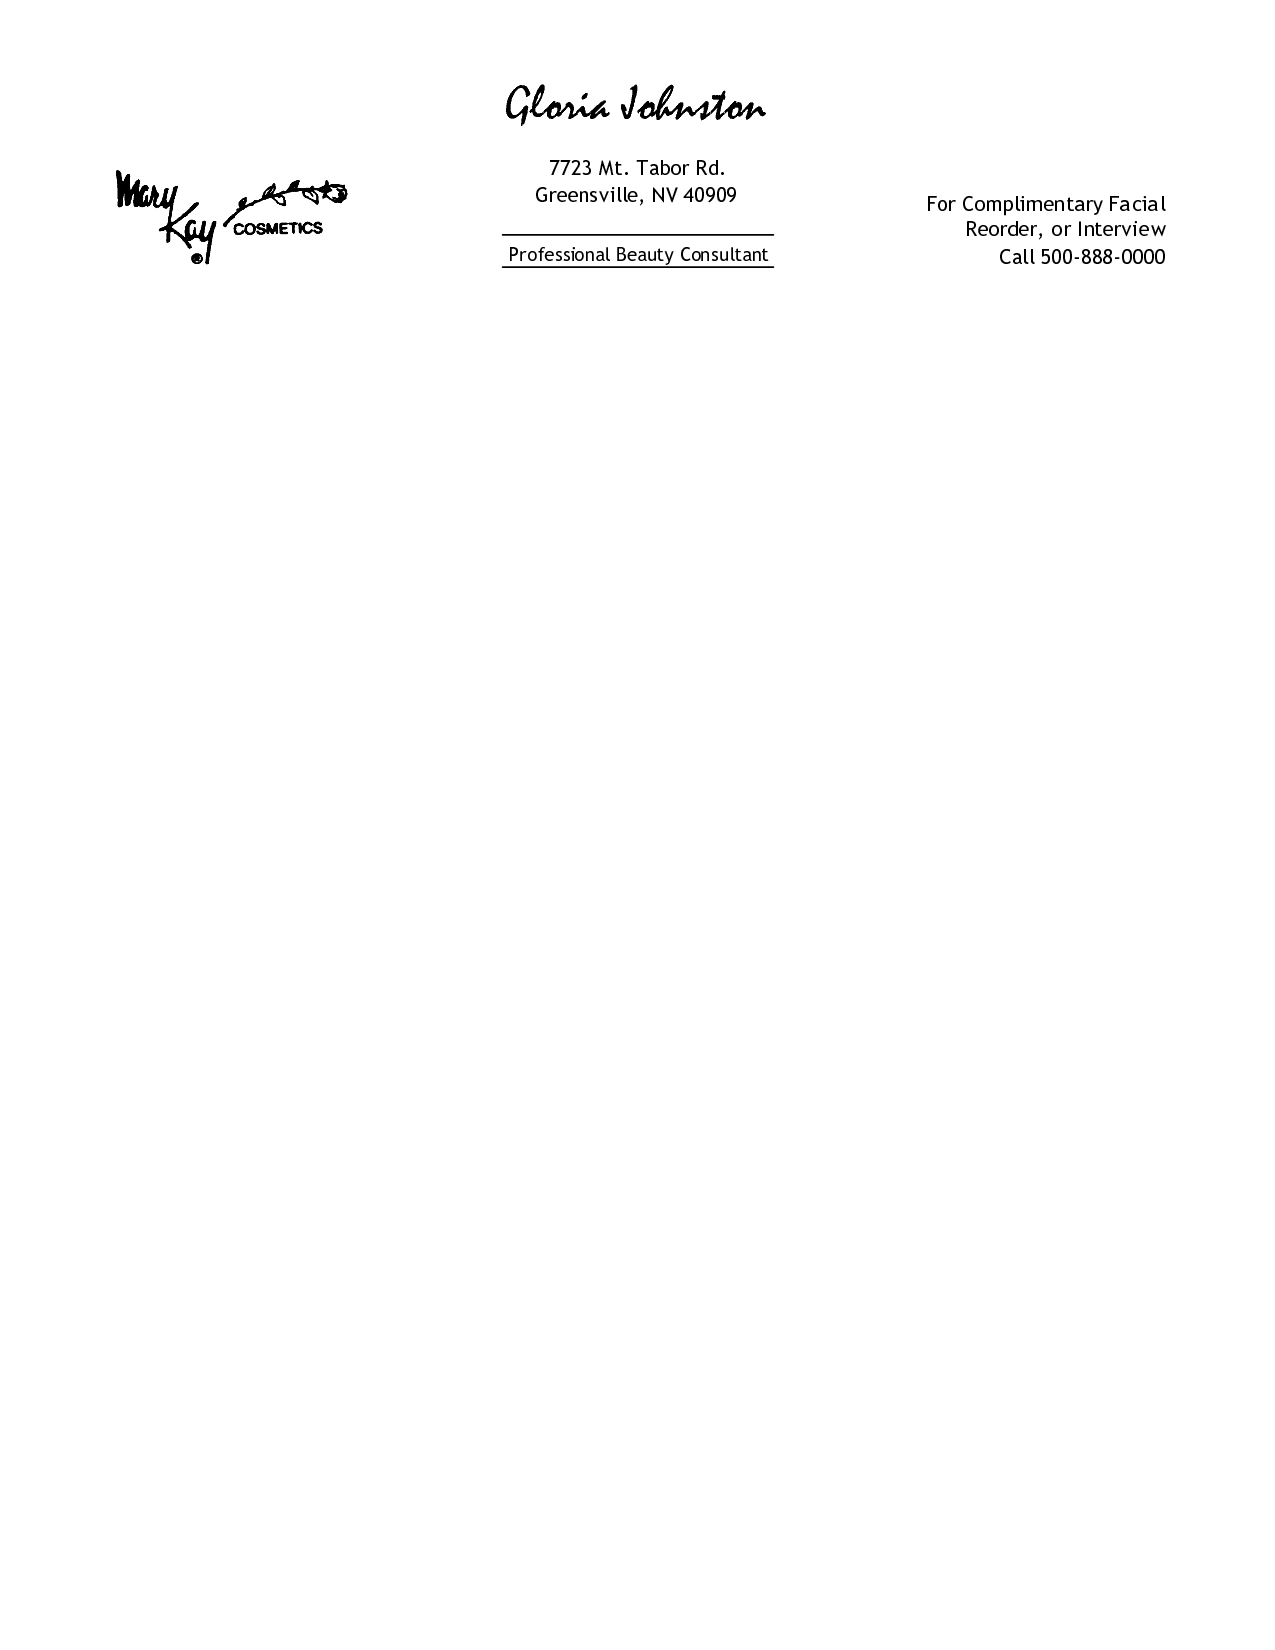 Free printable personal letterhead templates free professional doc free personal letterhead templates word sample legal best free home design idea inspiration spiritdancerdesigns